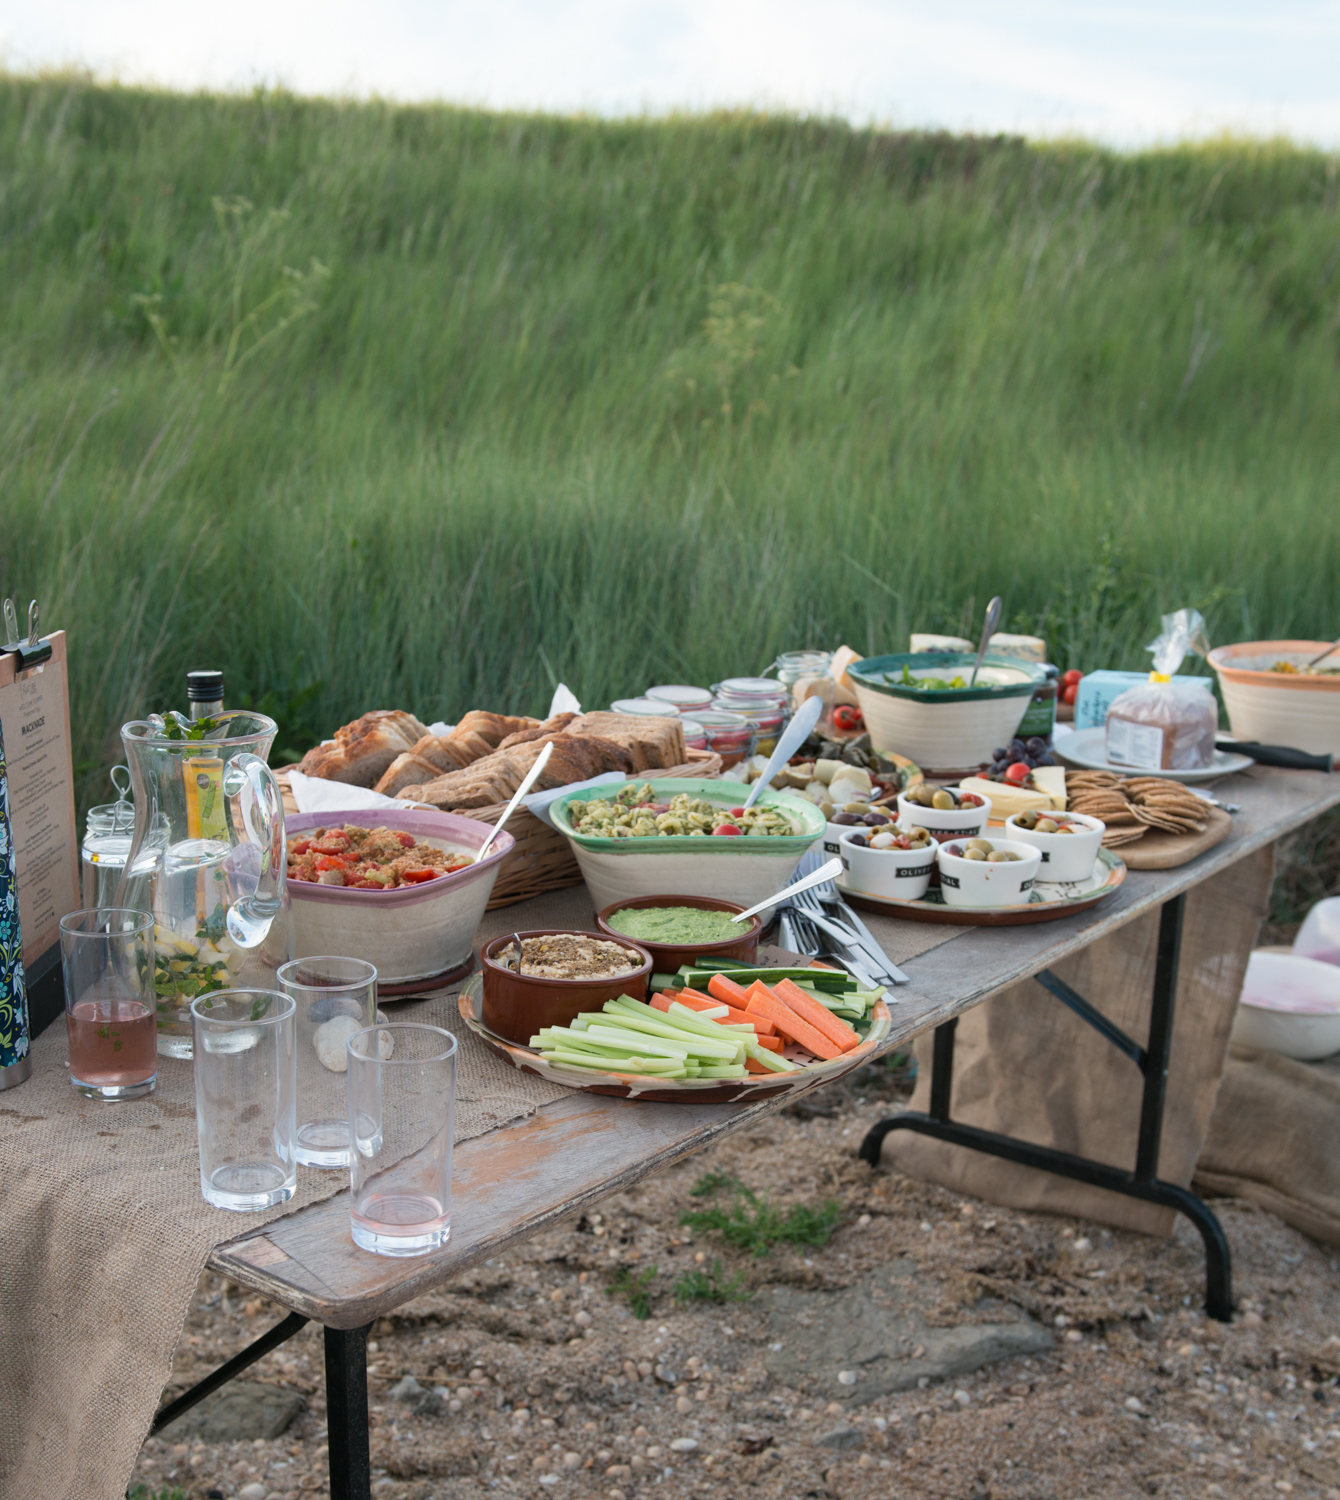 A beach picnic on wooden table with white windbreak behind it.